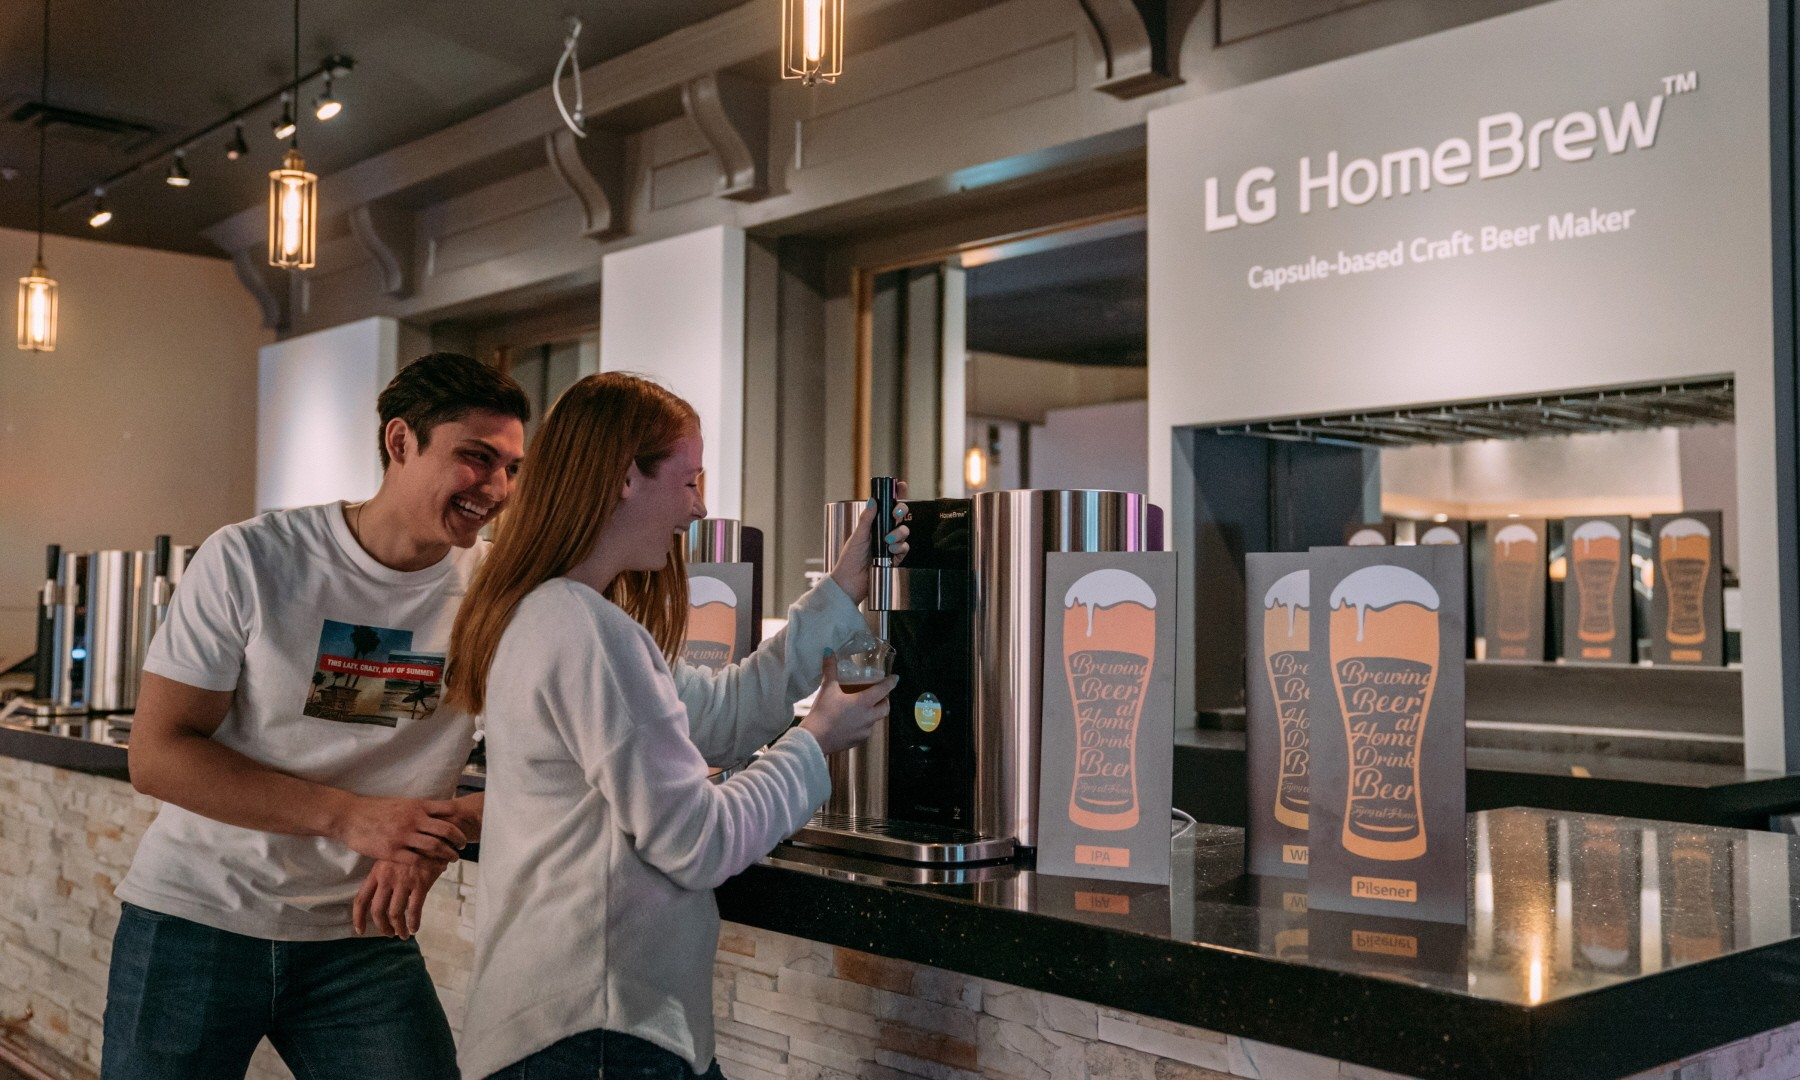 Models pose with LG HomeBrew, the innovative capsule-based device to make craft beer.